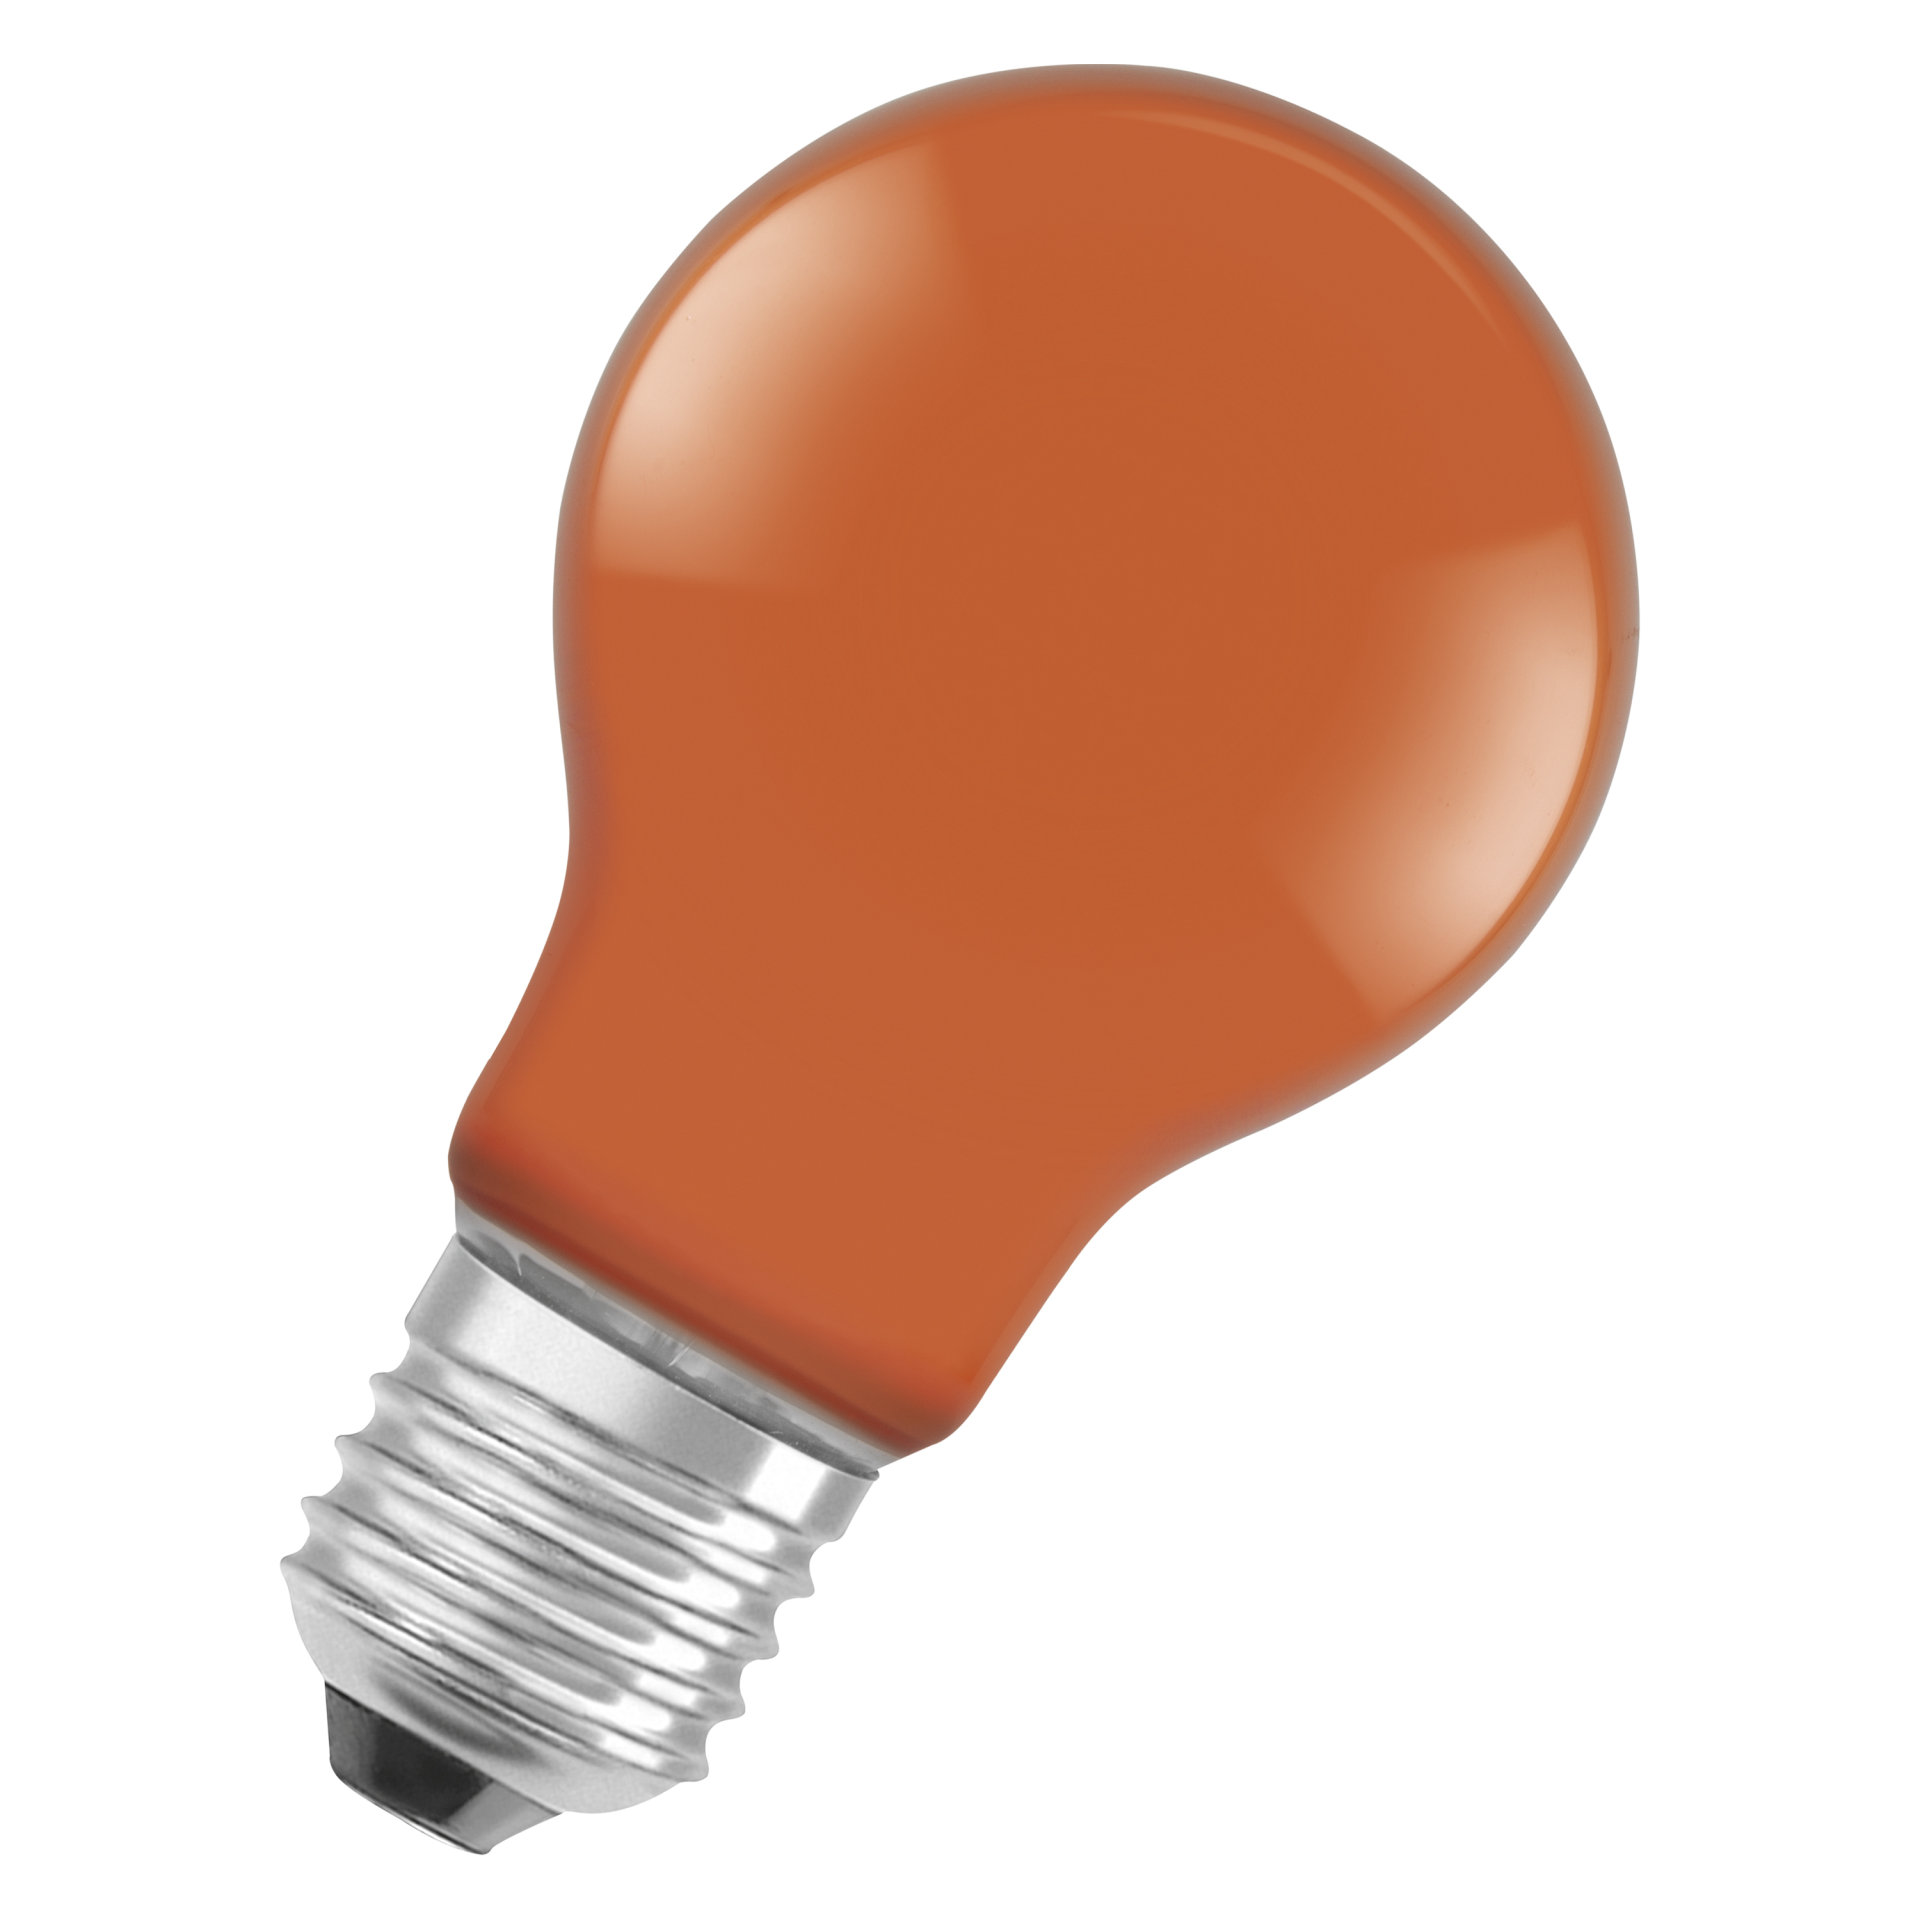 Consumer decorative LED lamps with classic bulbs